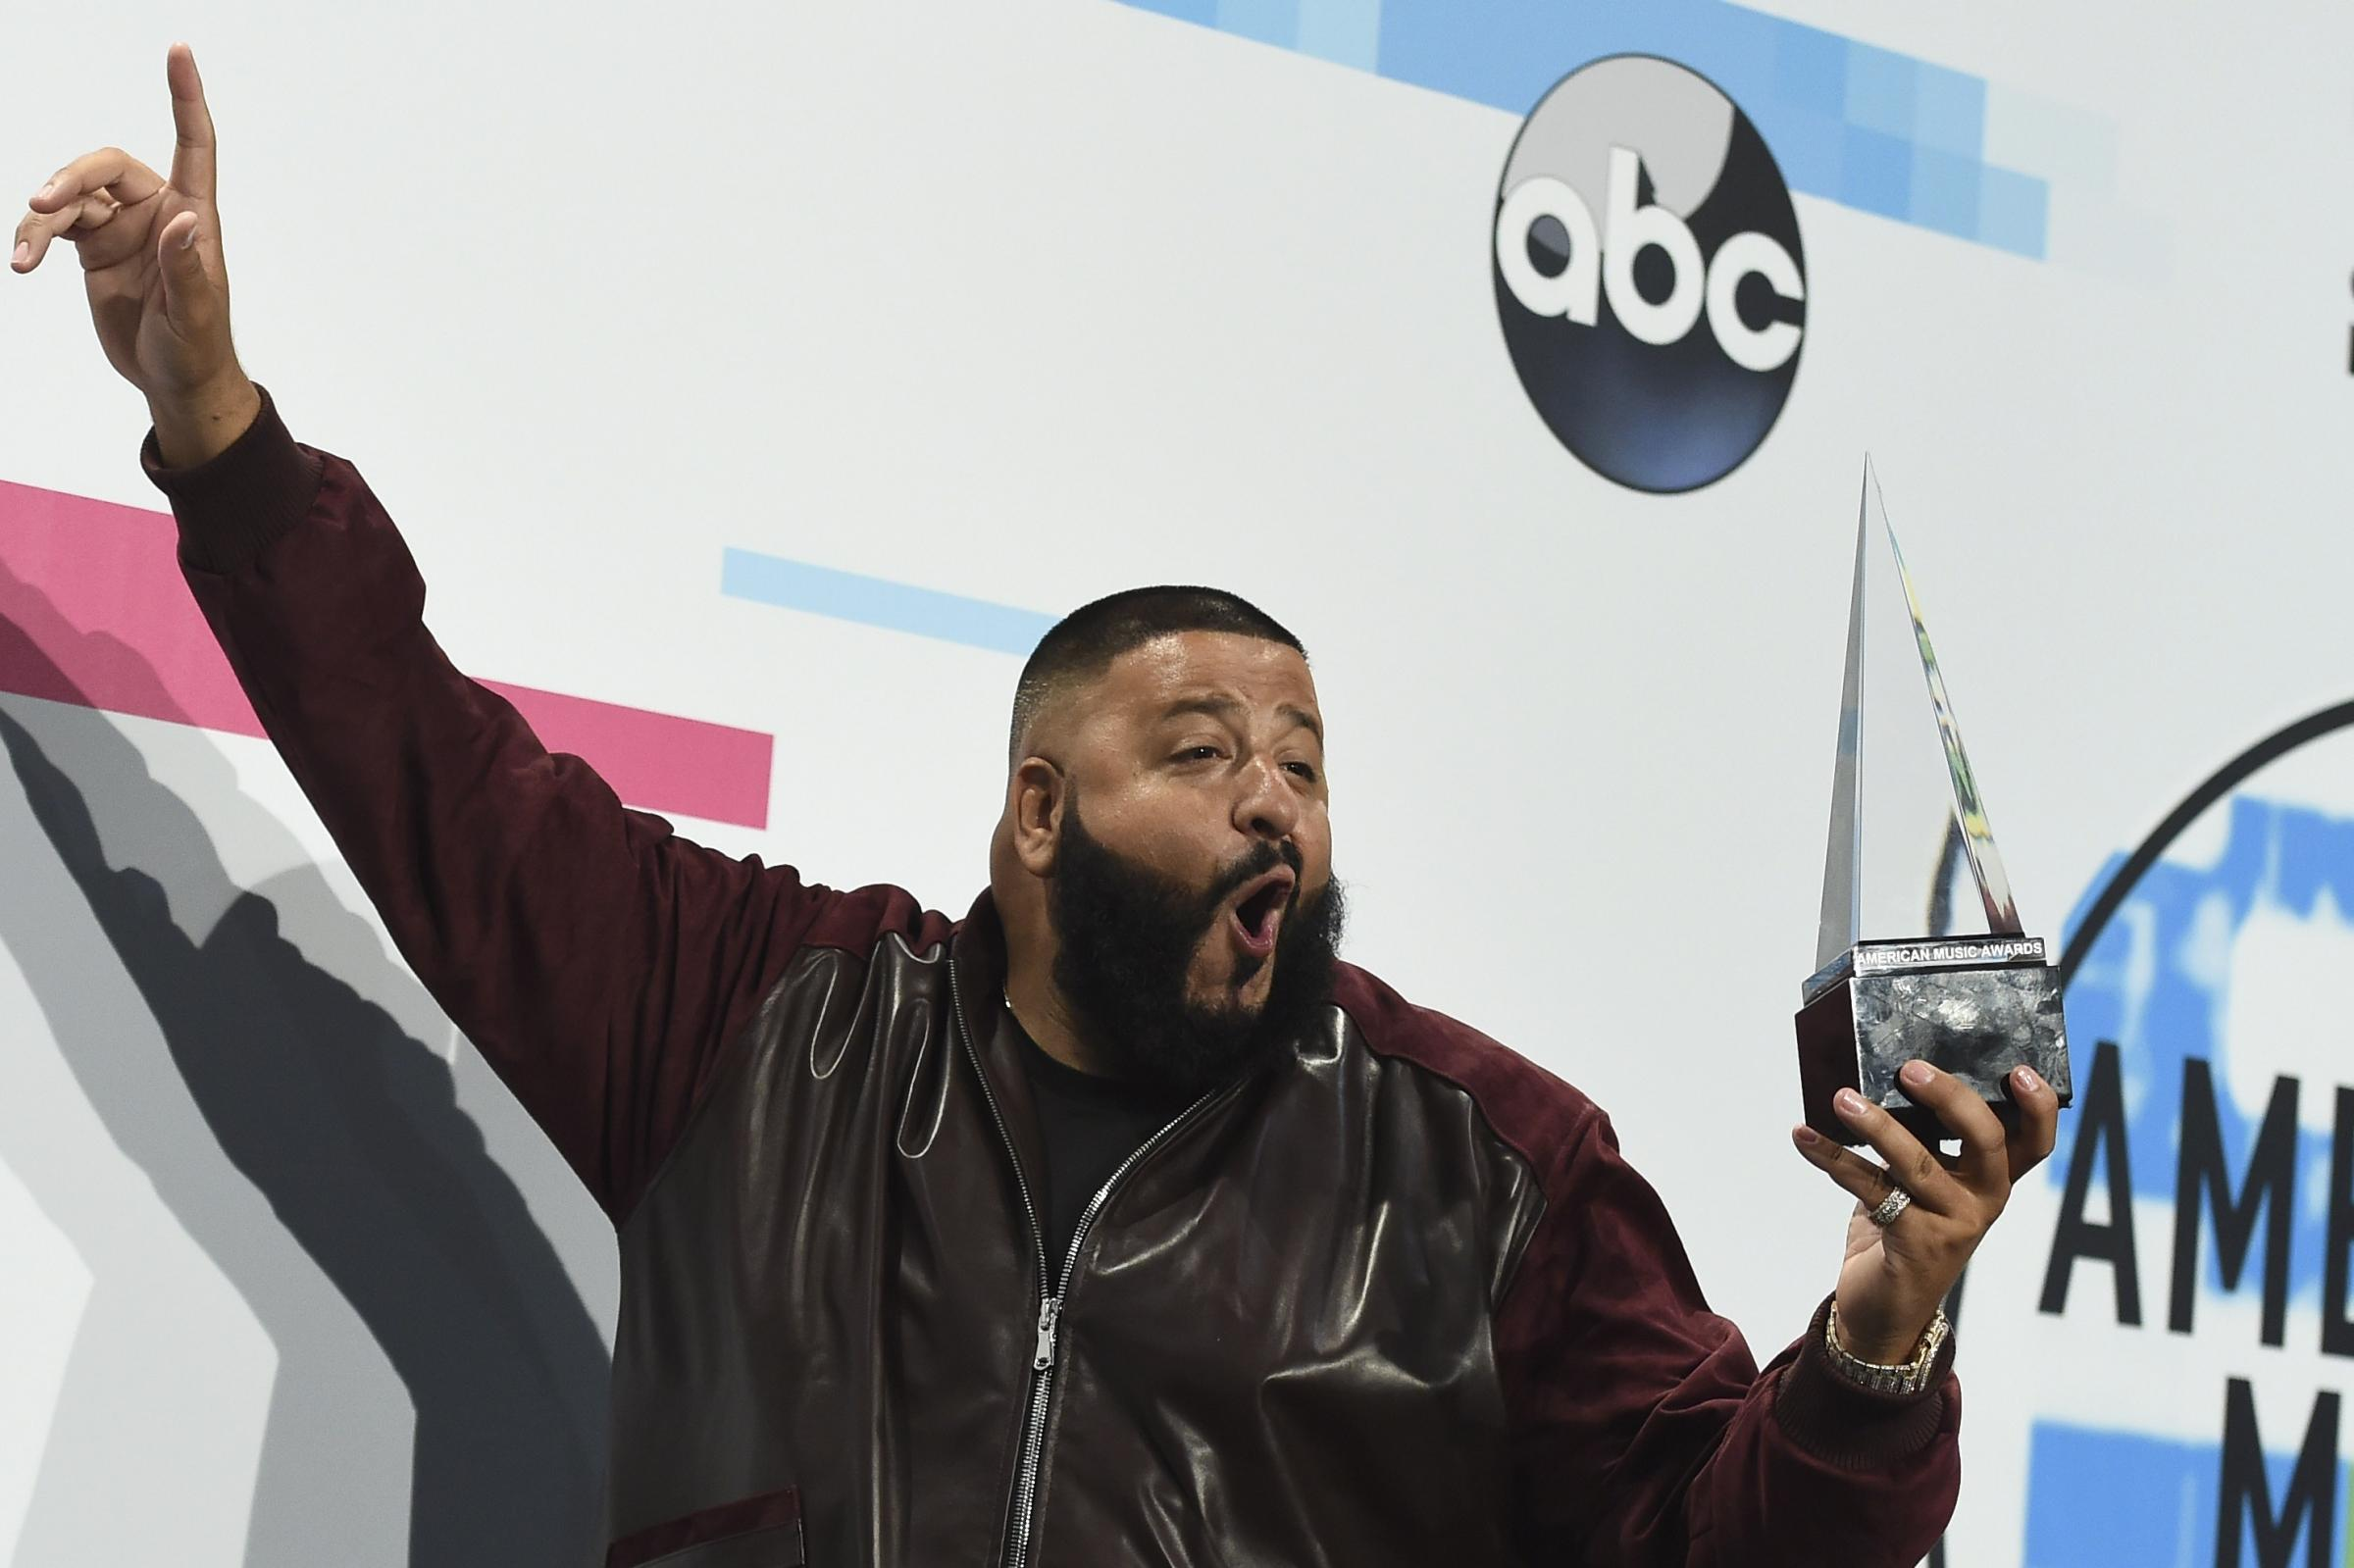 DJ Khaled excited to be welcomed to Weight Watchers by Oprah Winfrey (Jordan Strauss/Invision/AP)